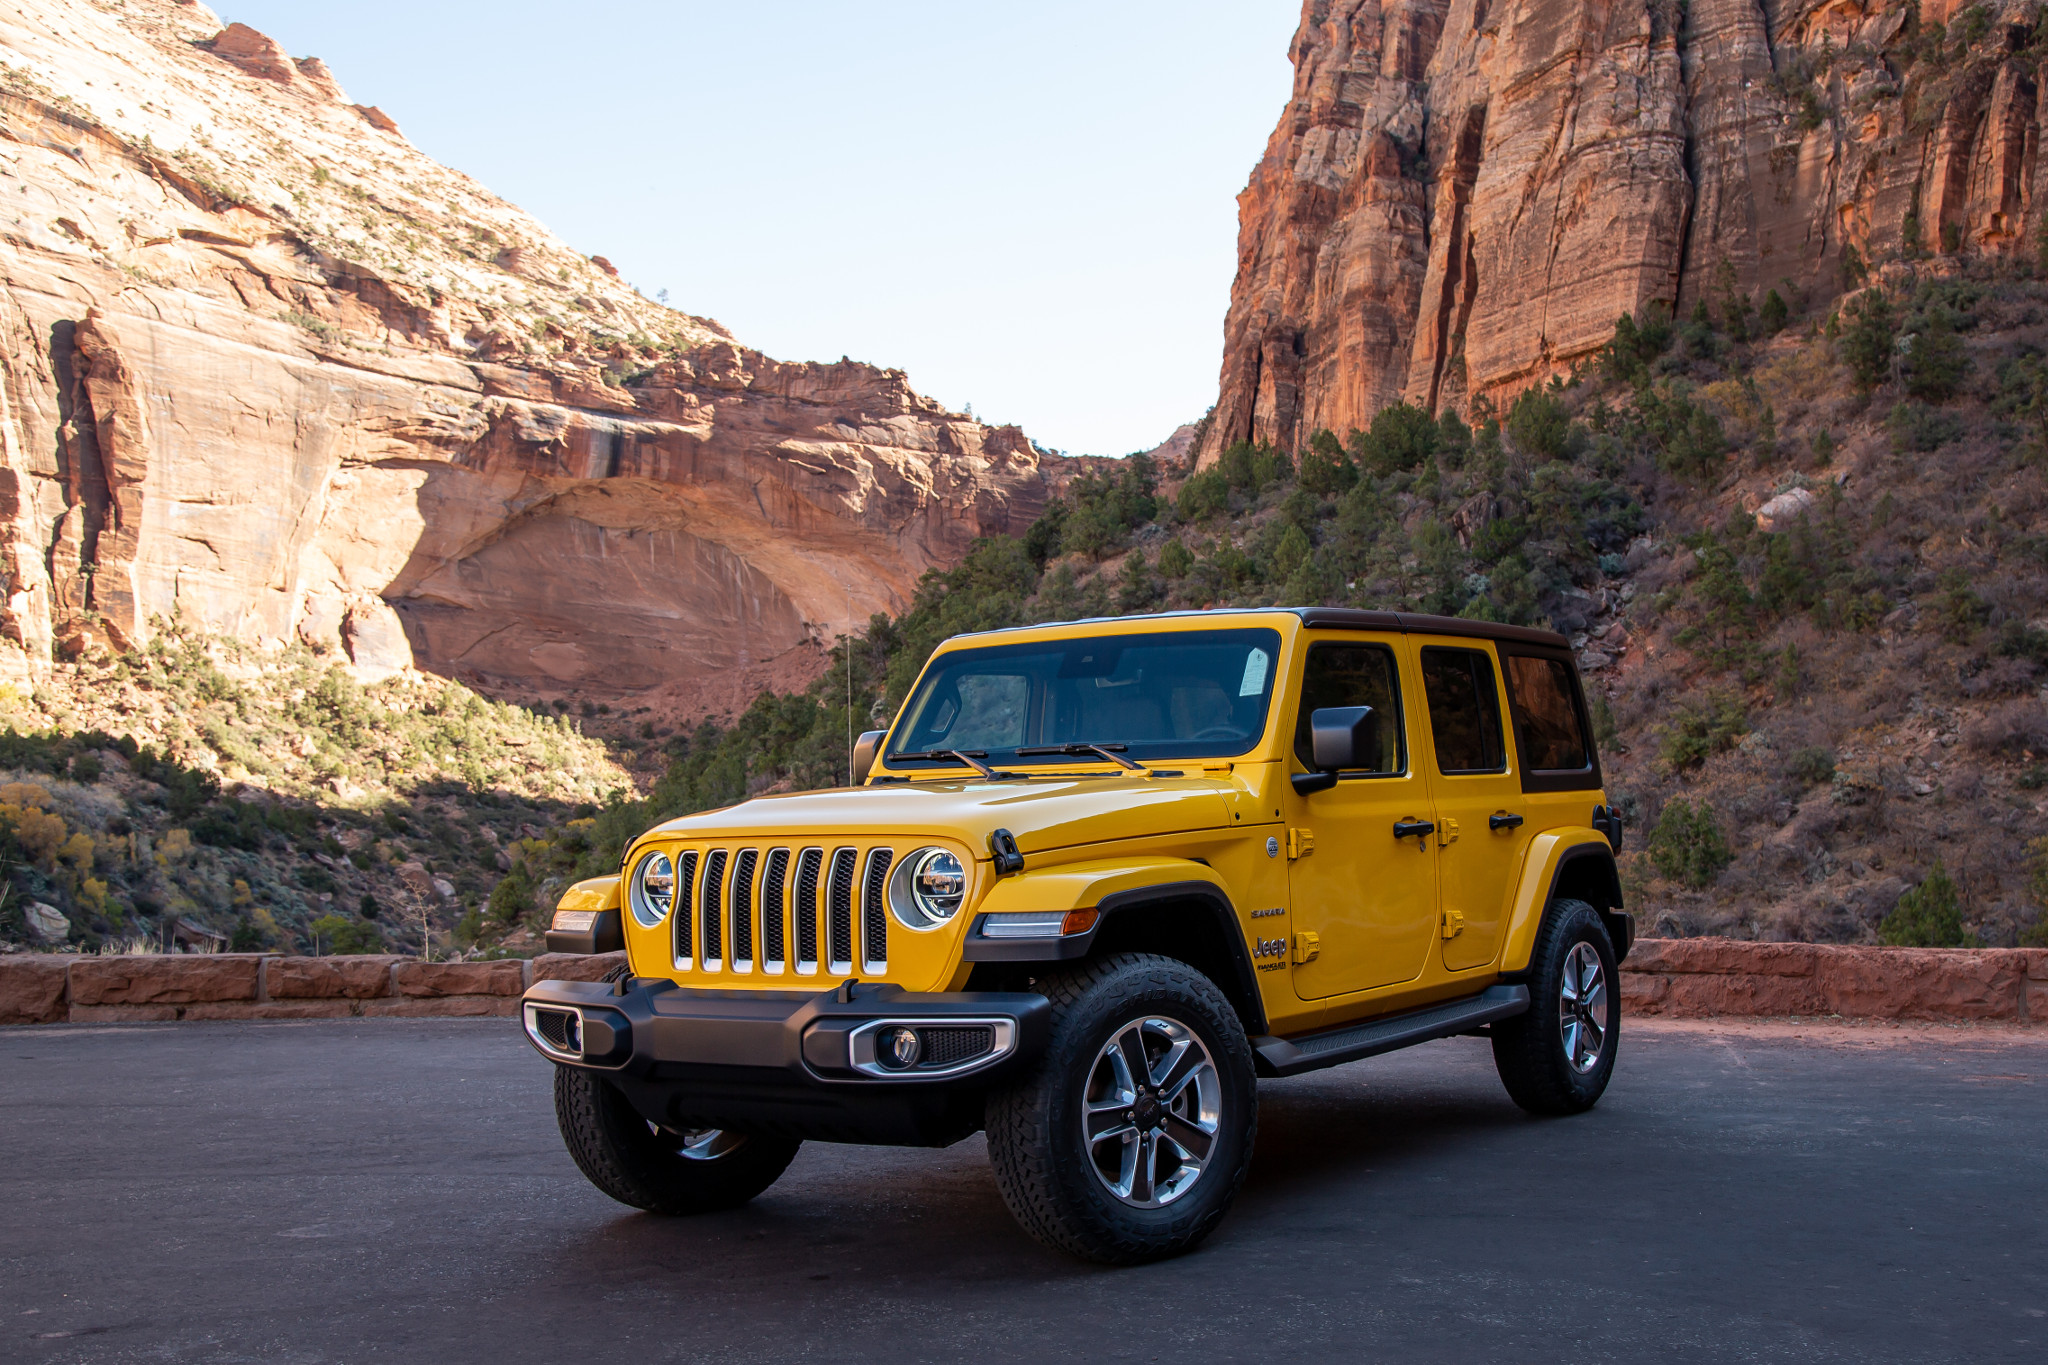 2020 Jeep Wrangler EcoDiesel Review: Efficiency You Can Feel (and Hear)